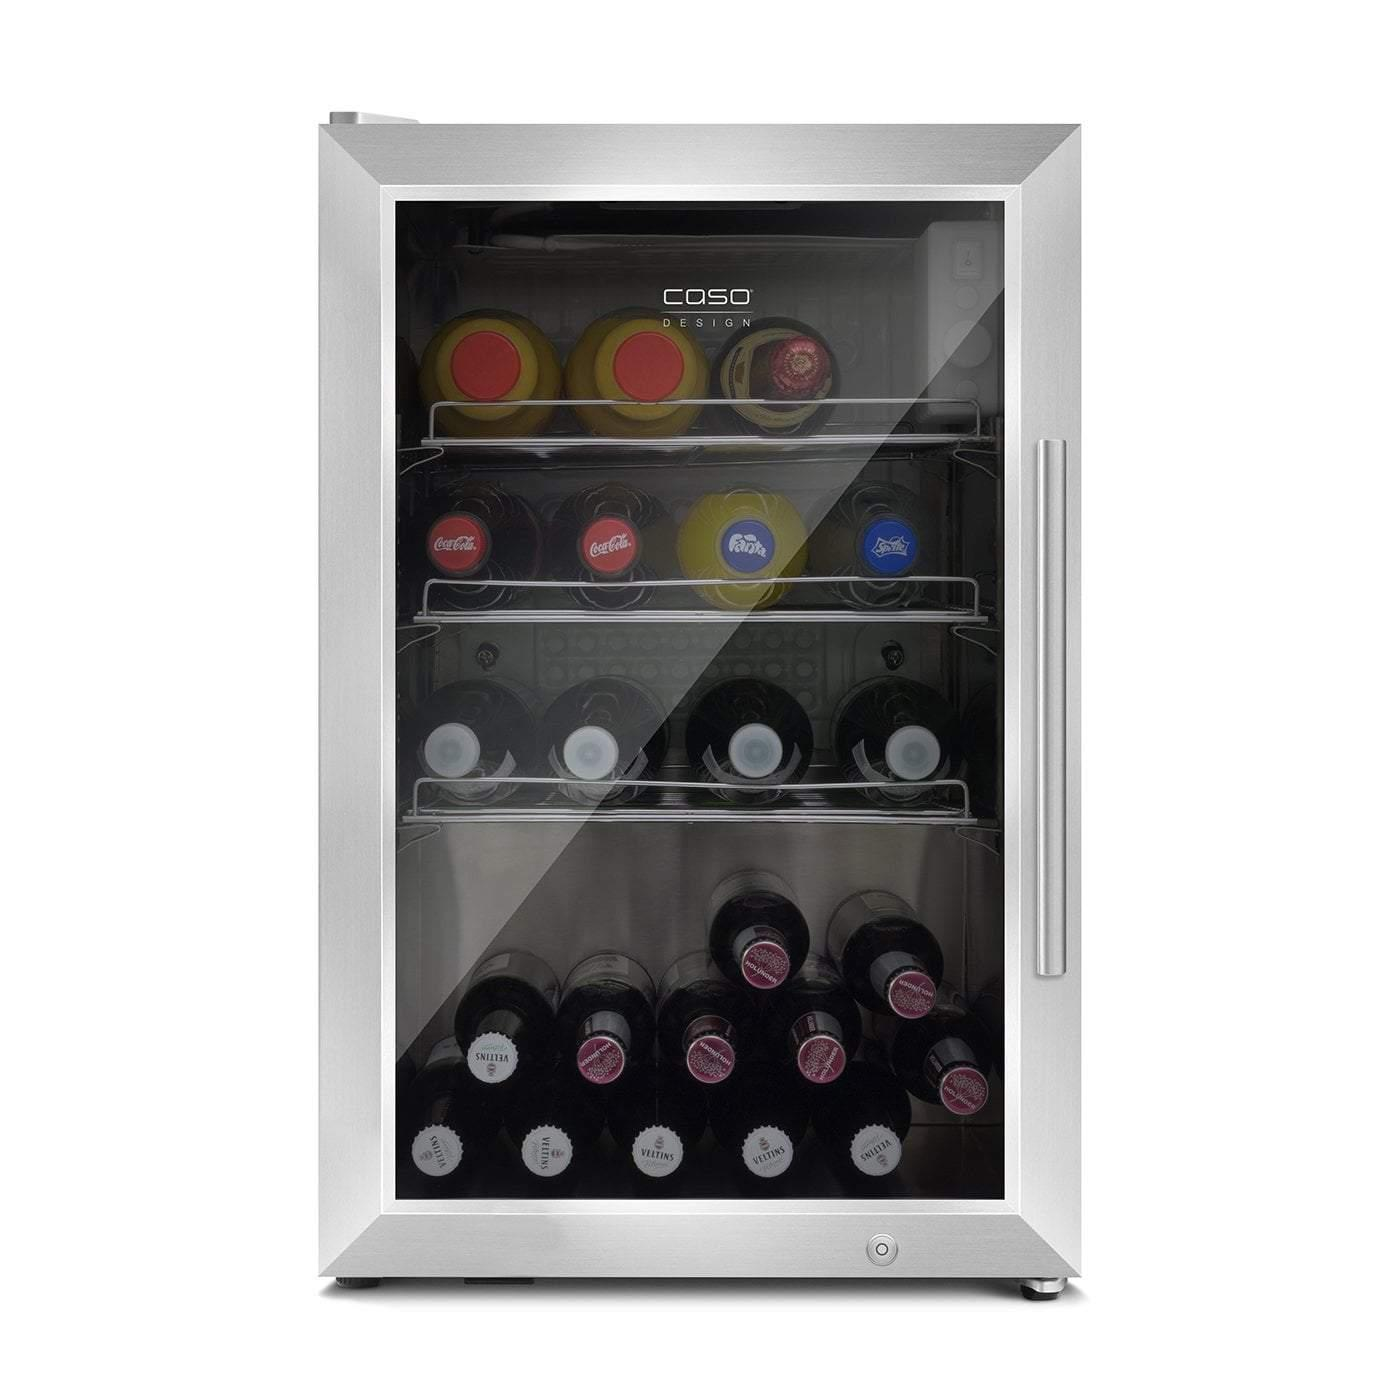 CASO Barbecue Cooler - 683 - winestorageuk